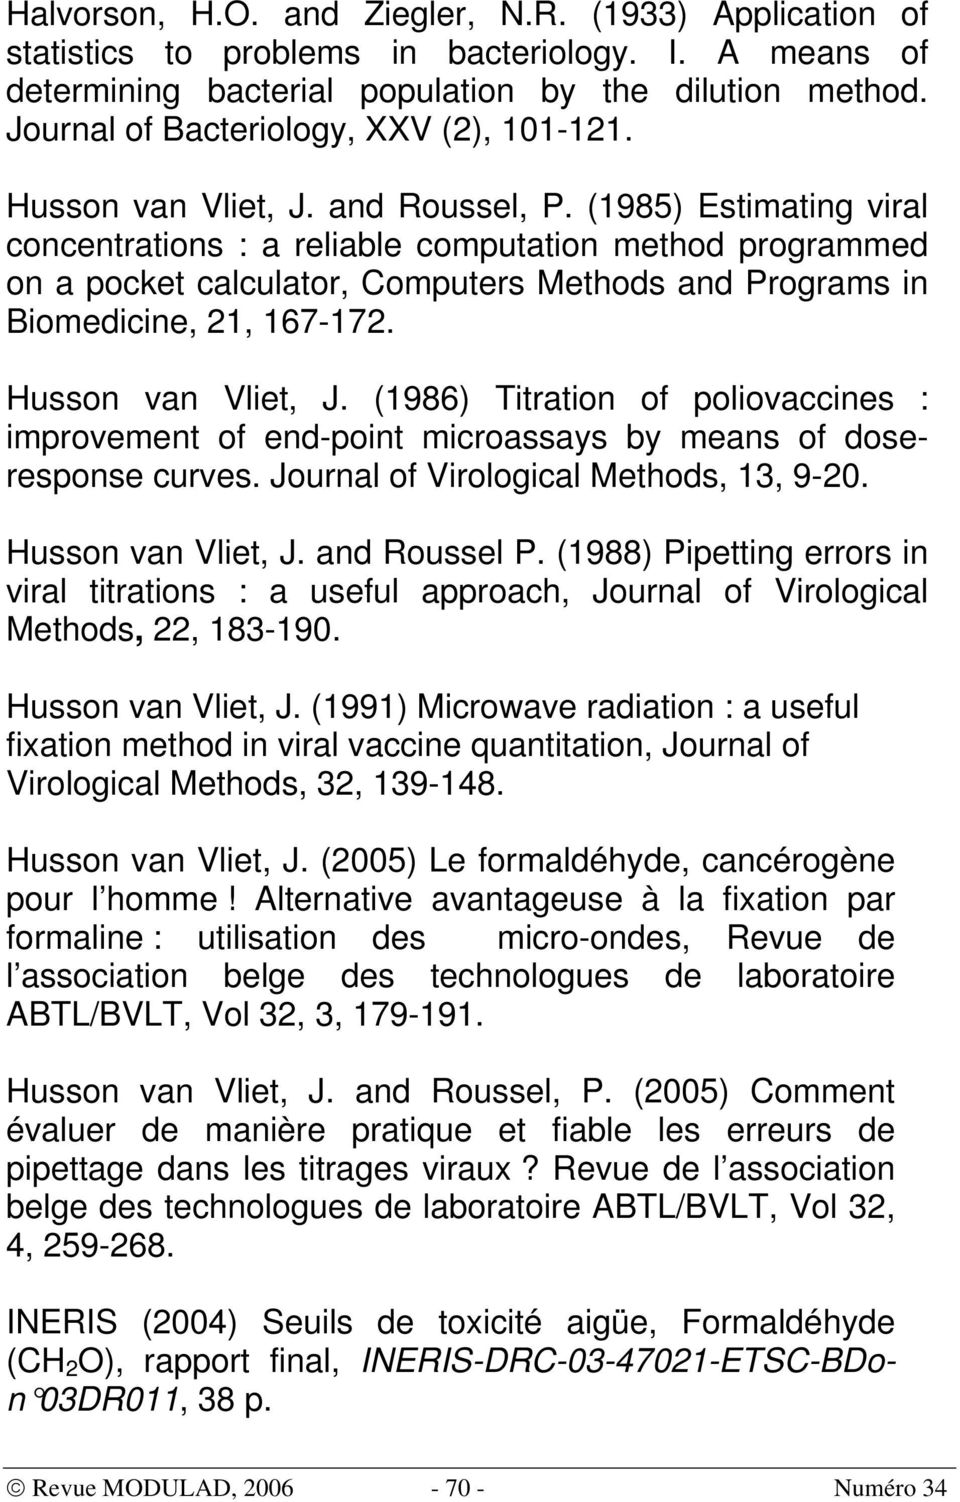 Husson van Vlet, J. (986) Ttraton o polovaccnes : mprovement o end-pont mcroassays by means o doseresponse curves. Journal o Vrologcal Methods, 3, 9-0. Husson van Vlet, J. and Roussel P.